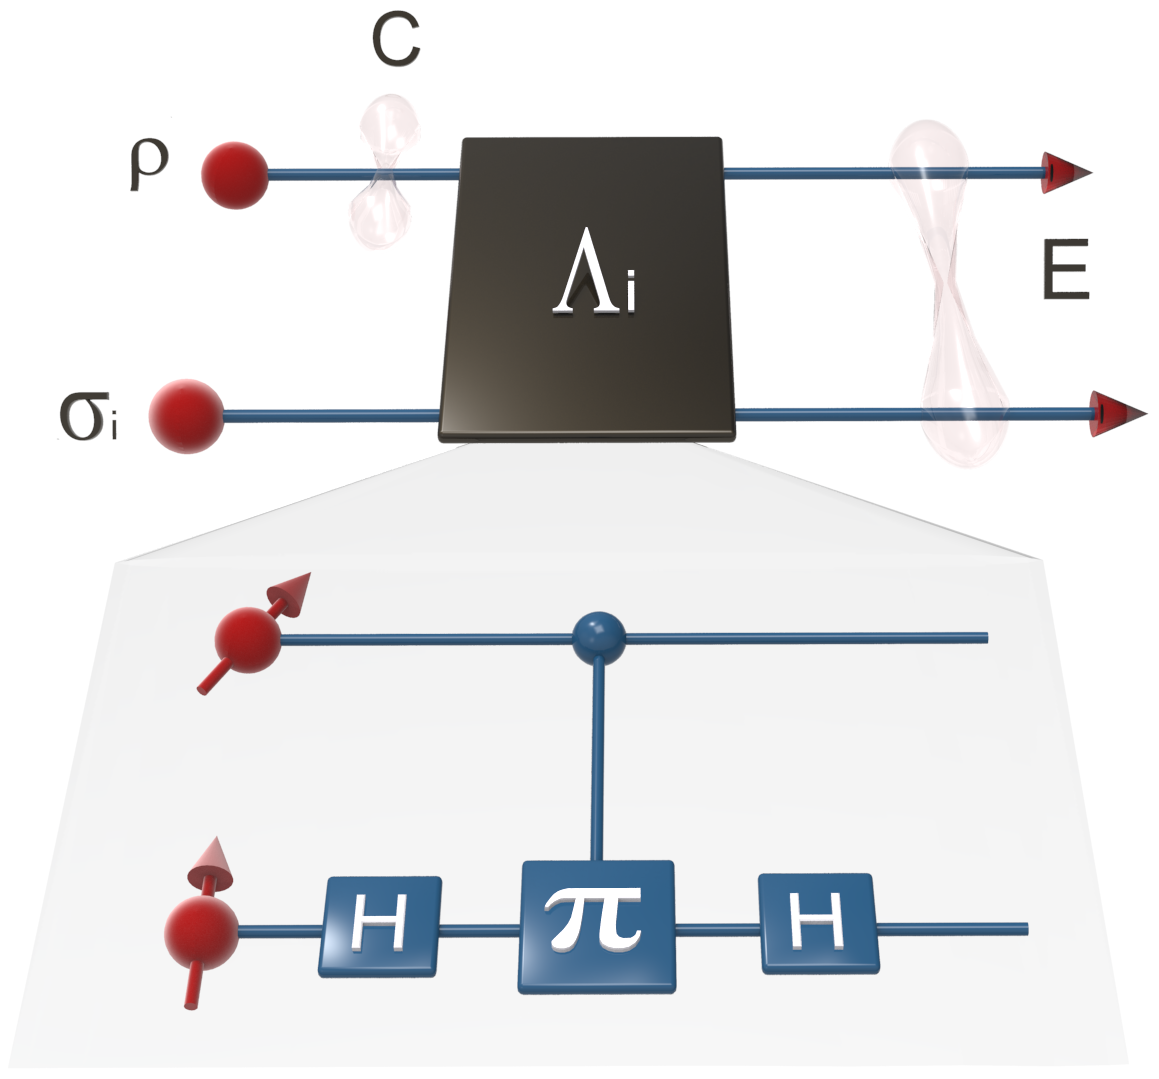 Two individual quantum states are generated and labeled as the system state and the ancilla state, respectively. The system state